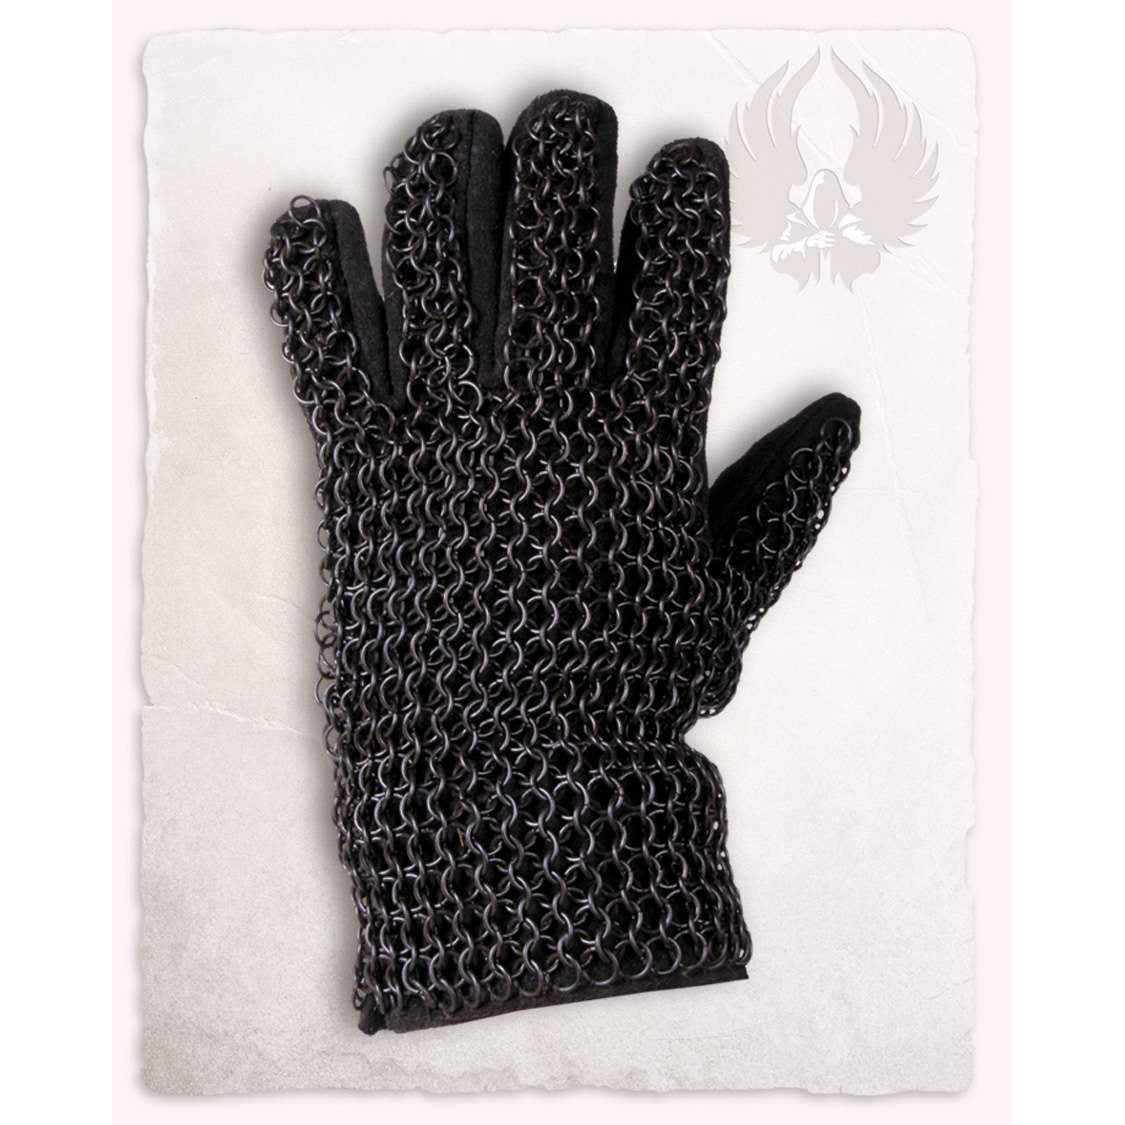 Richard chainmail gloves